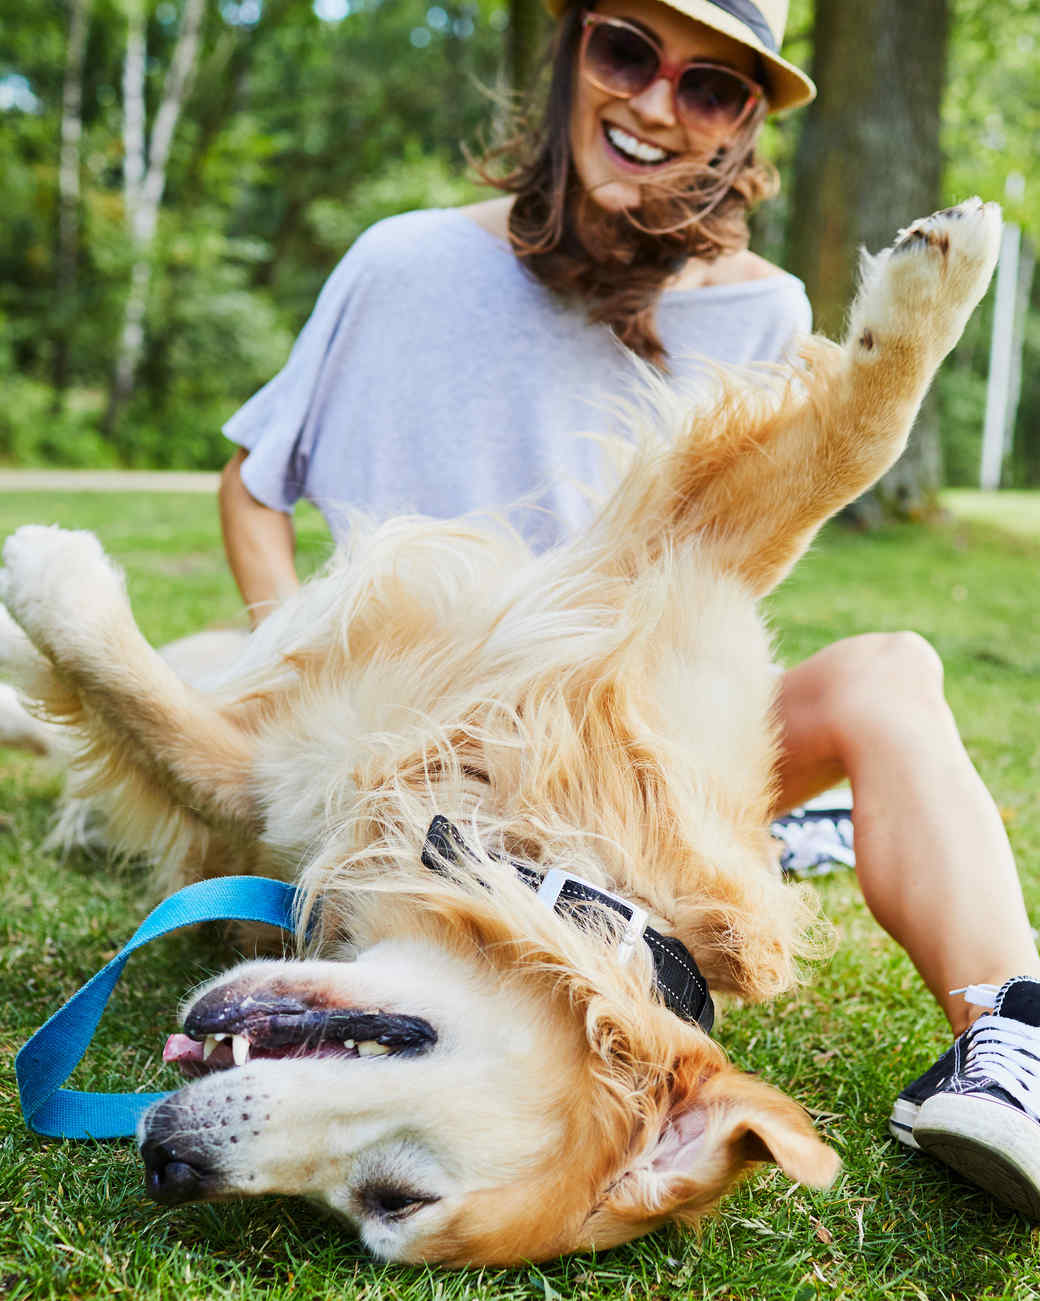 Golden Retriever Being Petted in the Park by Young Woman